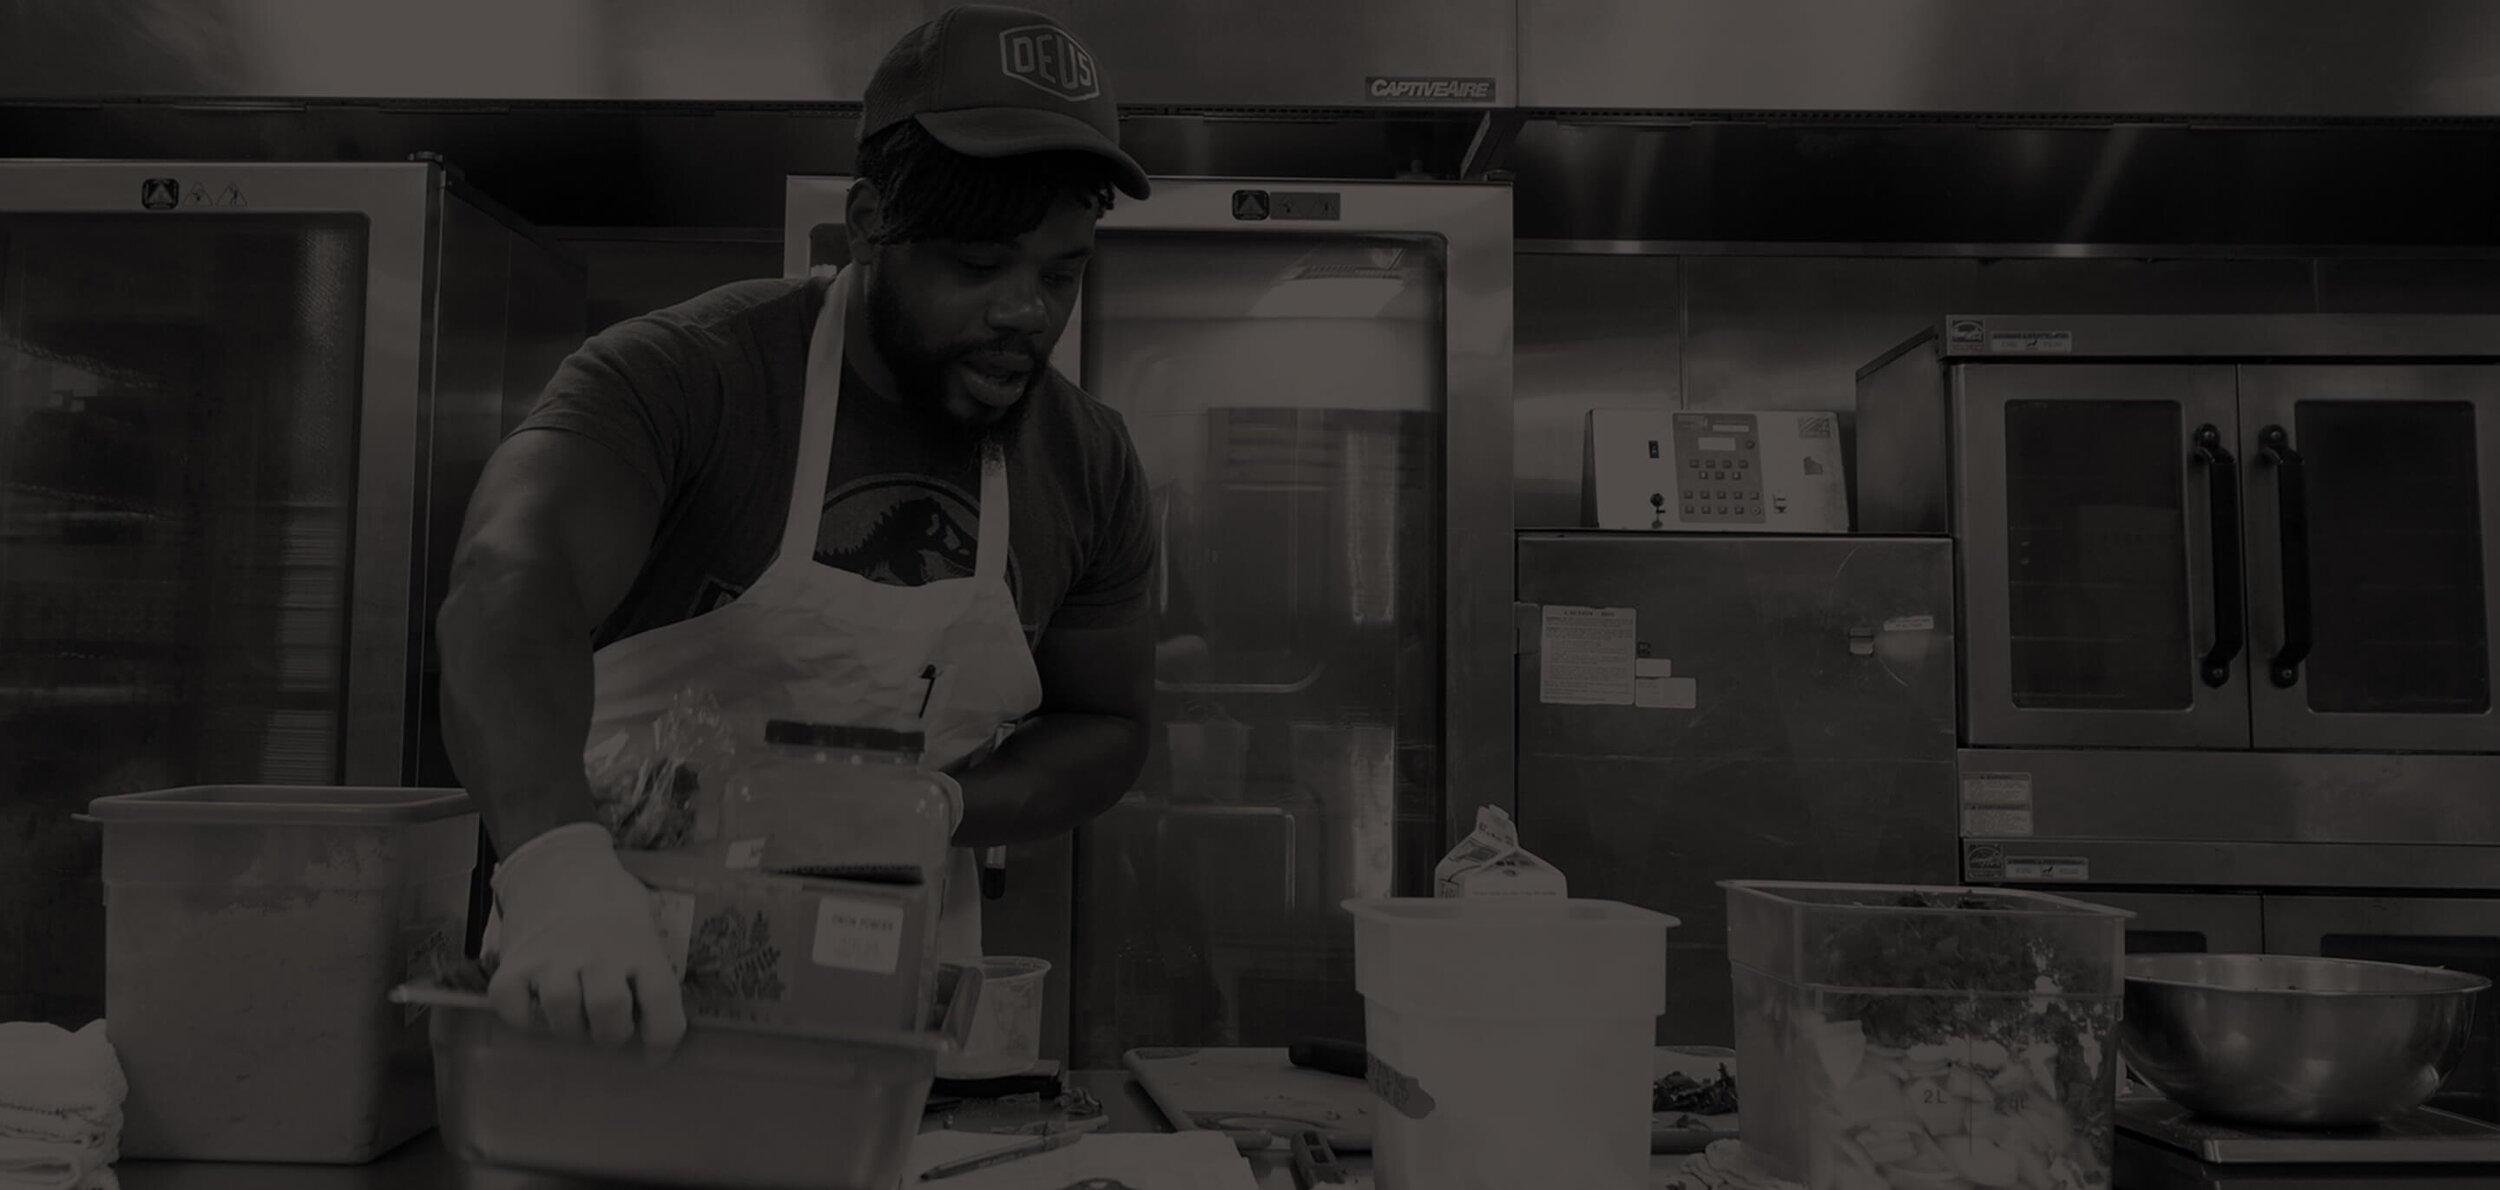 Commercial Kitchens For Rent Chicago Amped Kitchens